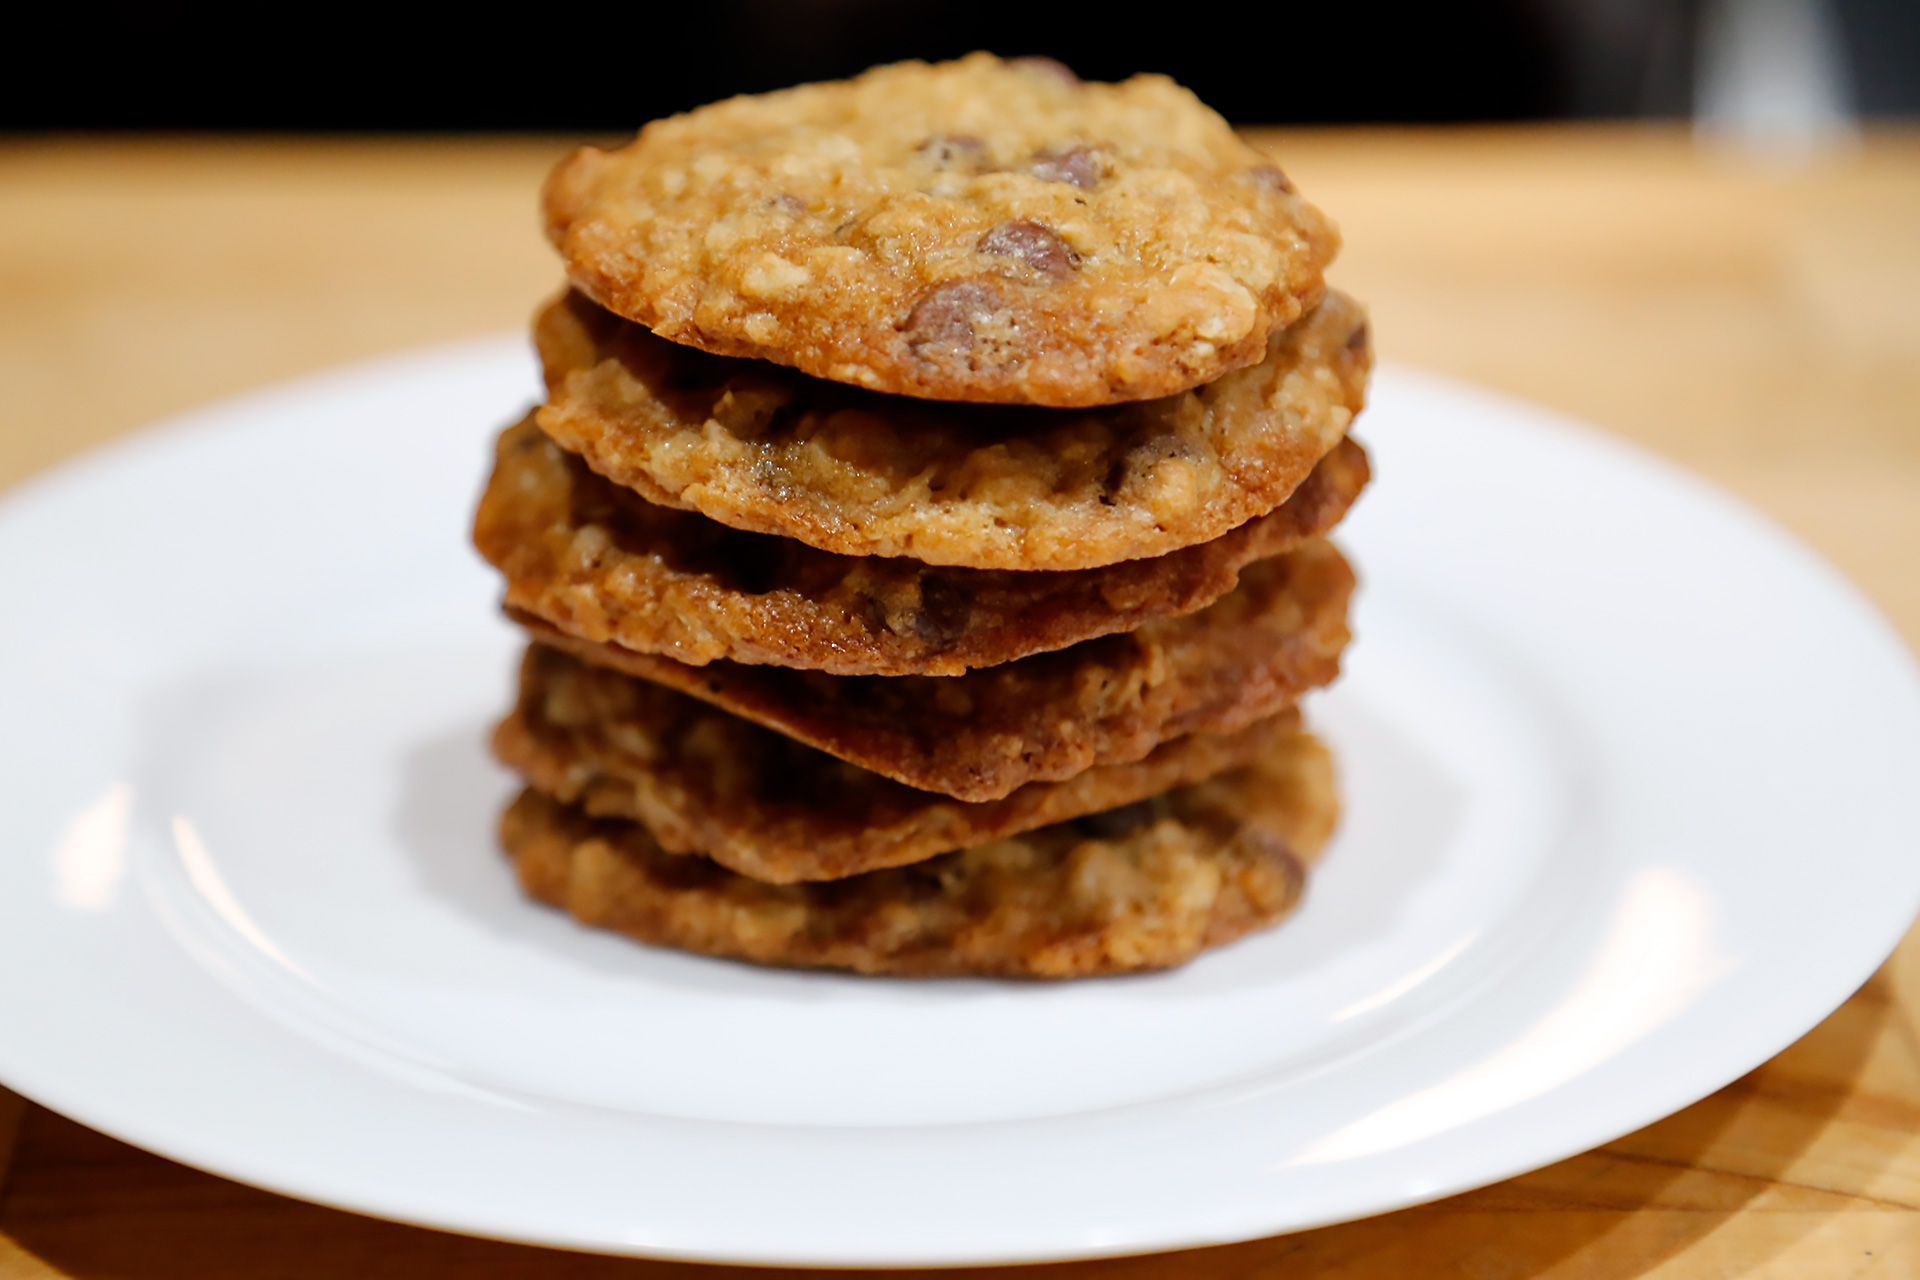 Serve the Oatmeal-Chocolate Chip Cookies